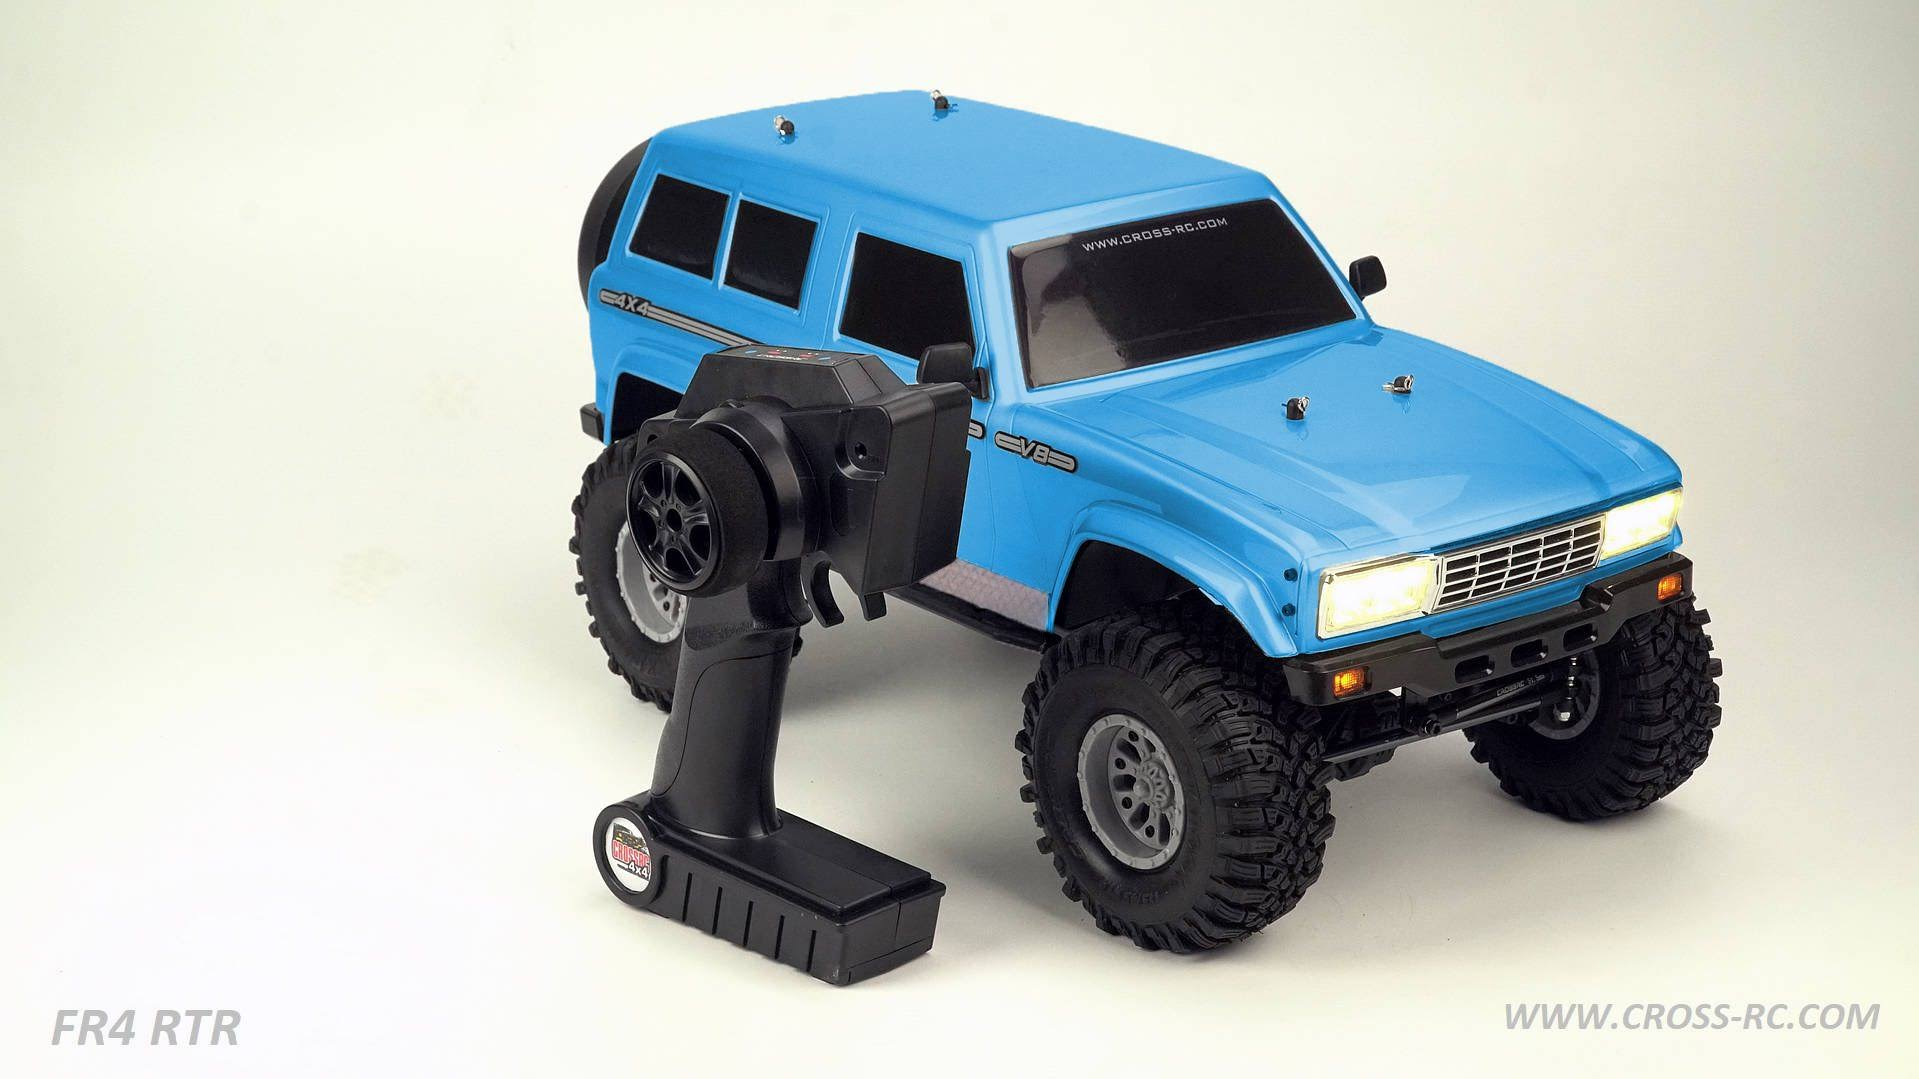 Cross RC - FR4 1/10 Demon 4x4 Rtr; No Battery or Charger - Blue